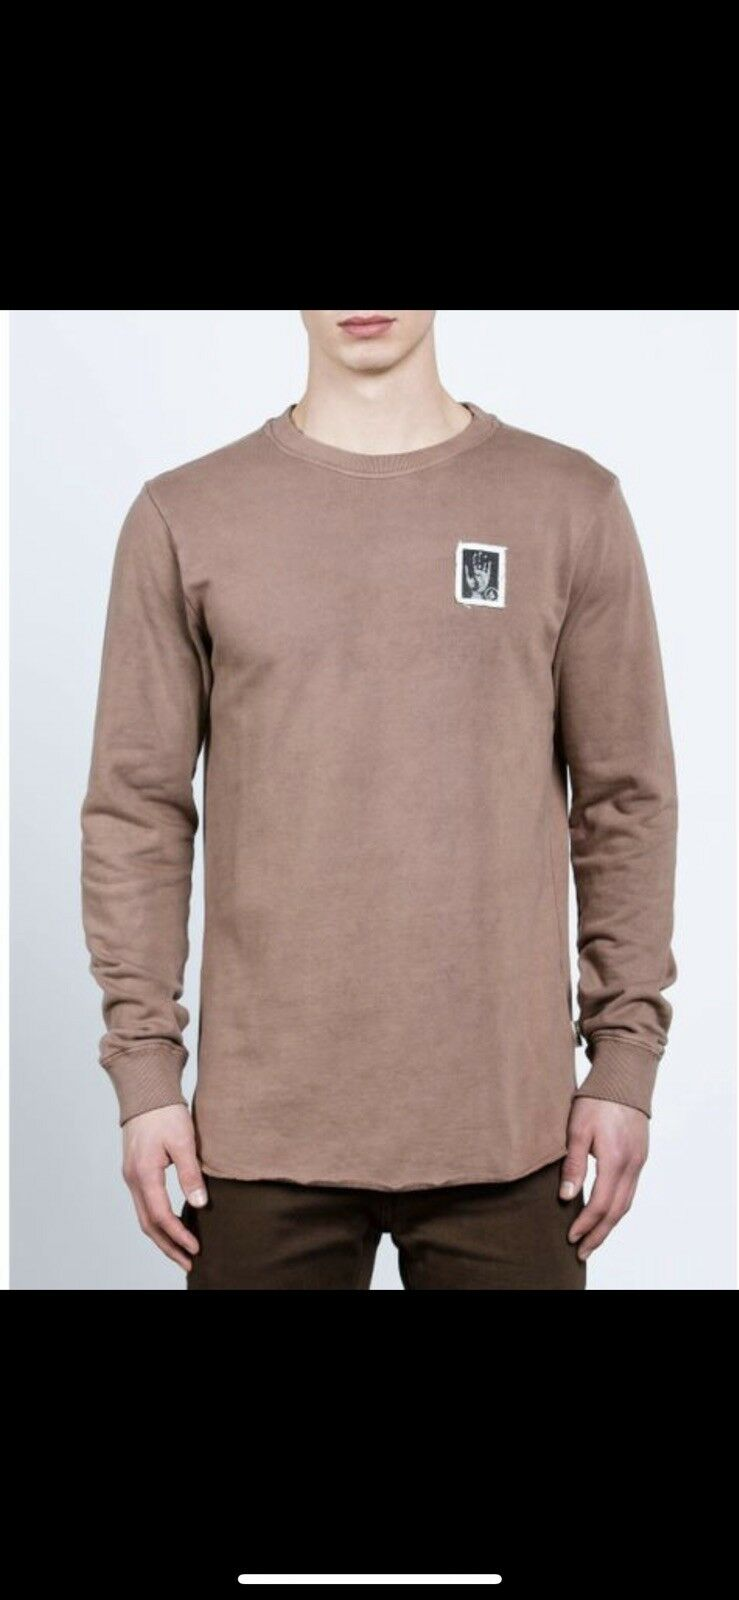 Volcom Men's Cassette Crew Sweatshirt - Dusty Brown - S